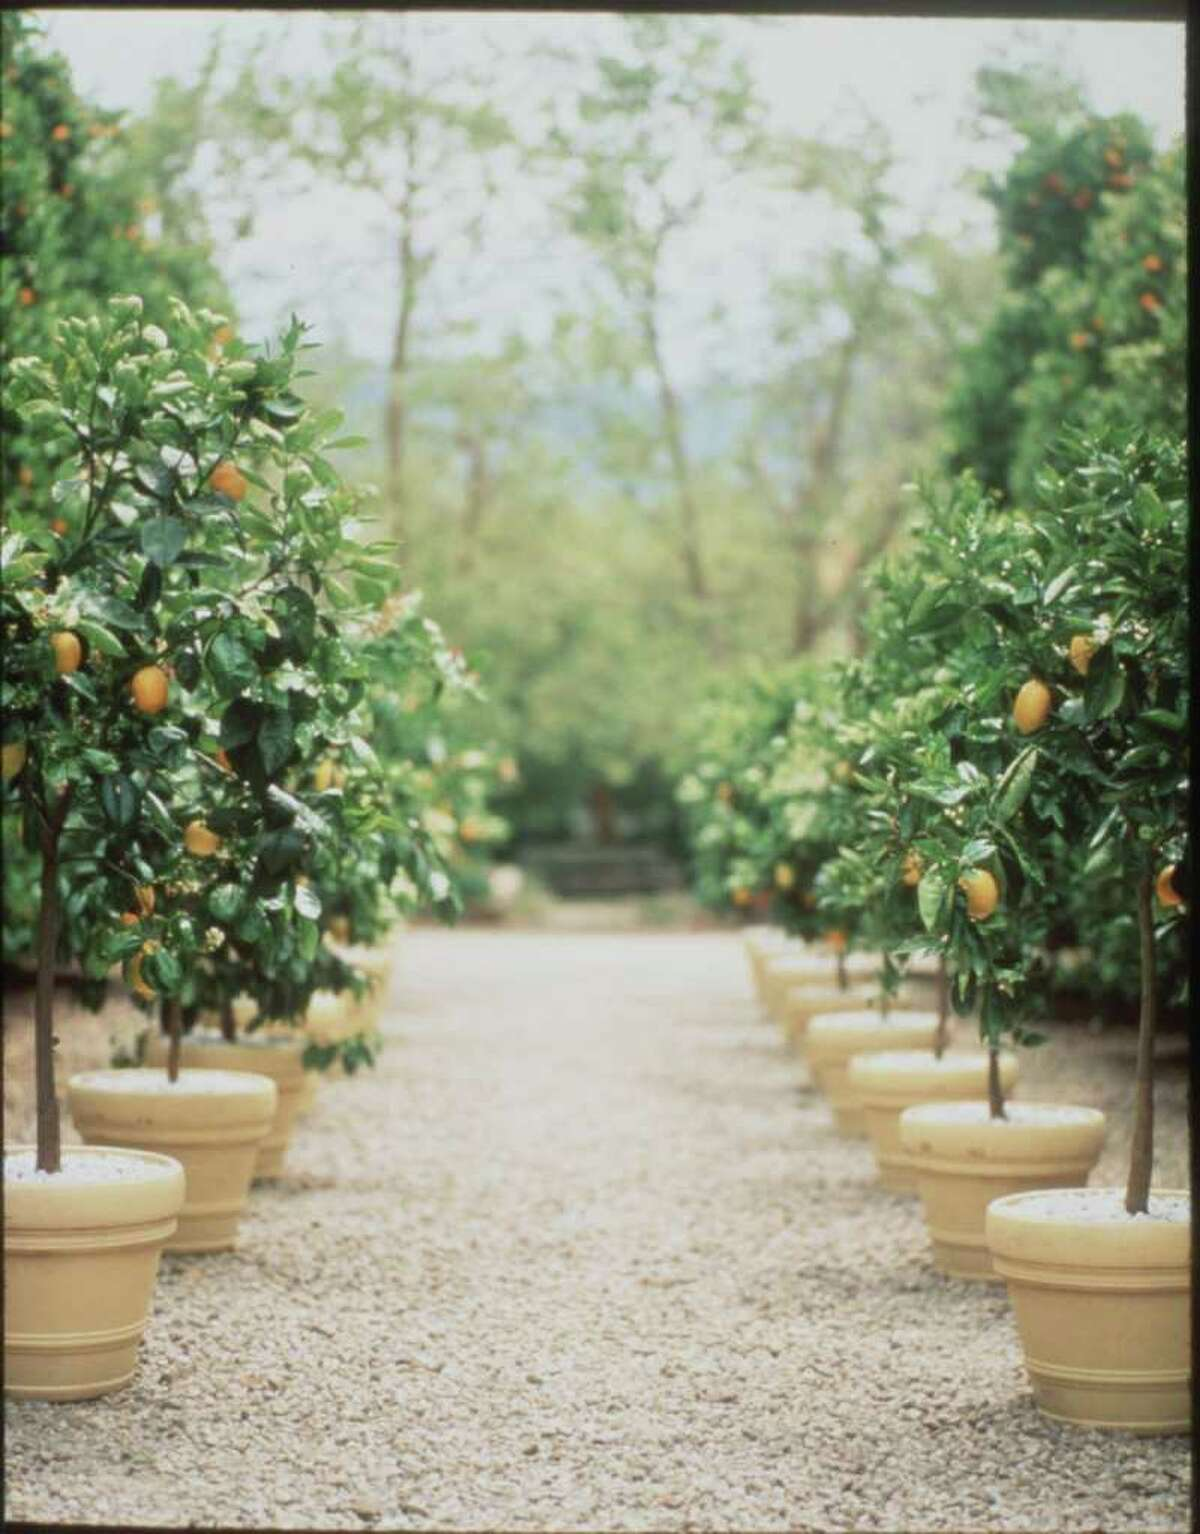 Compact citrus varieties such as 'Meyer' lemons, pictured, limes, satsumas and mandarins are especially suited to container growing. Martha Stewart photo credit.